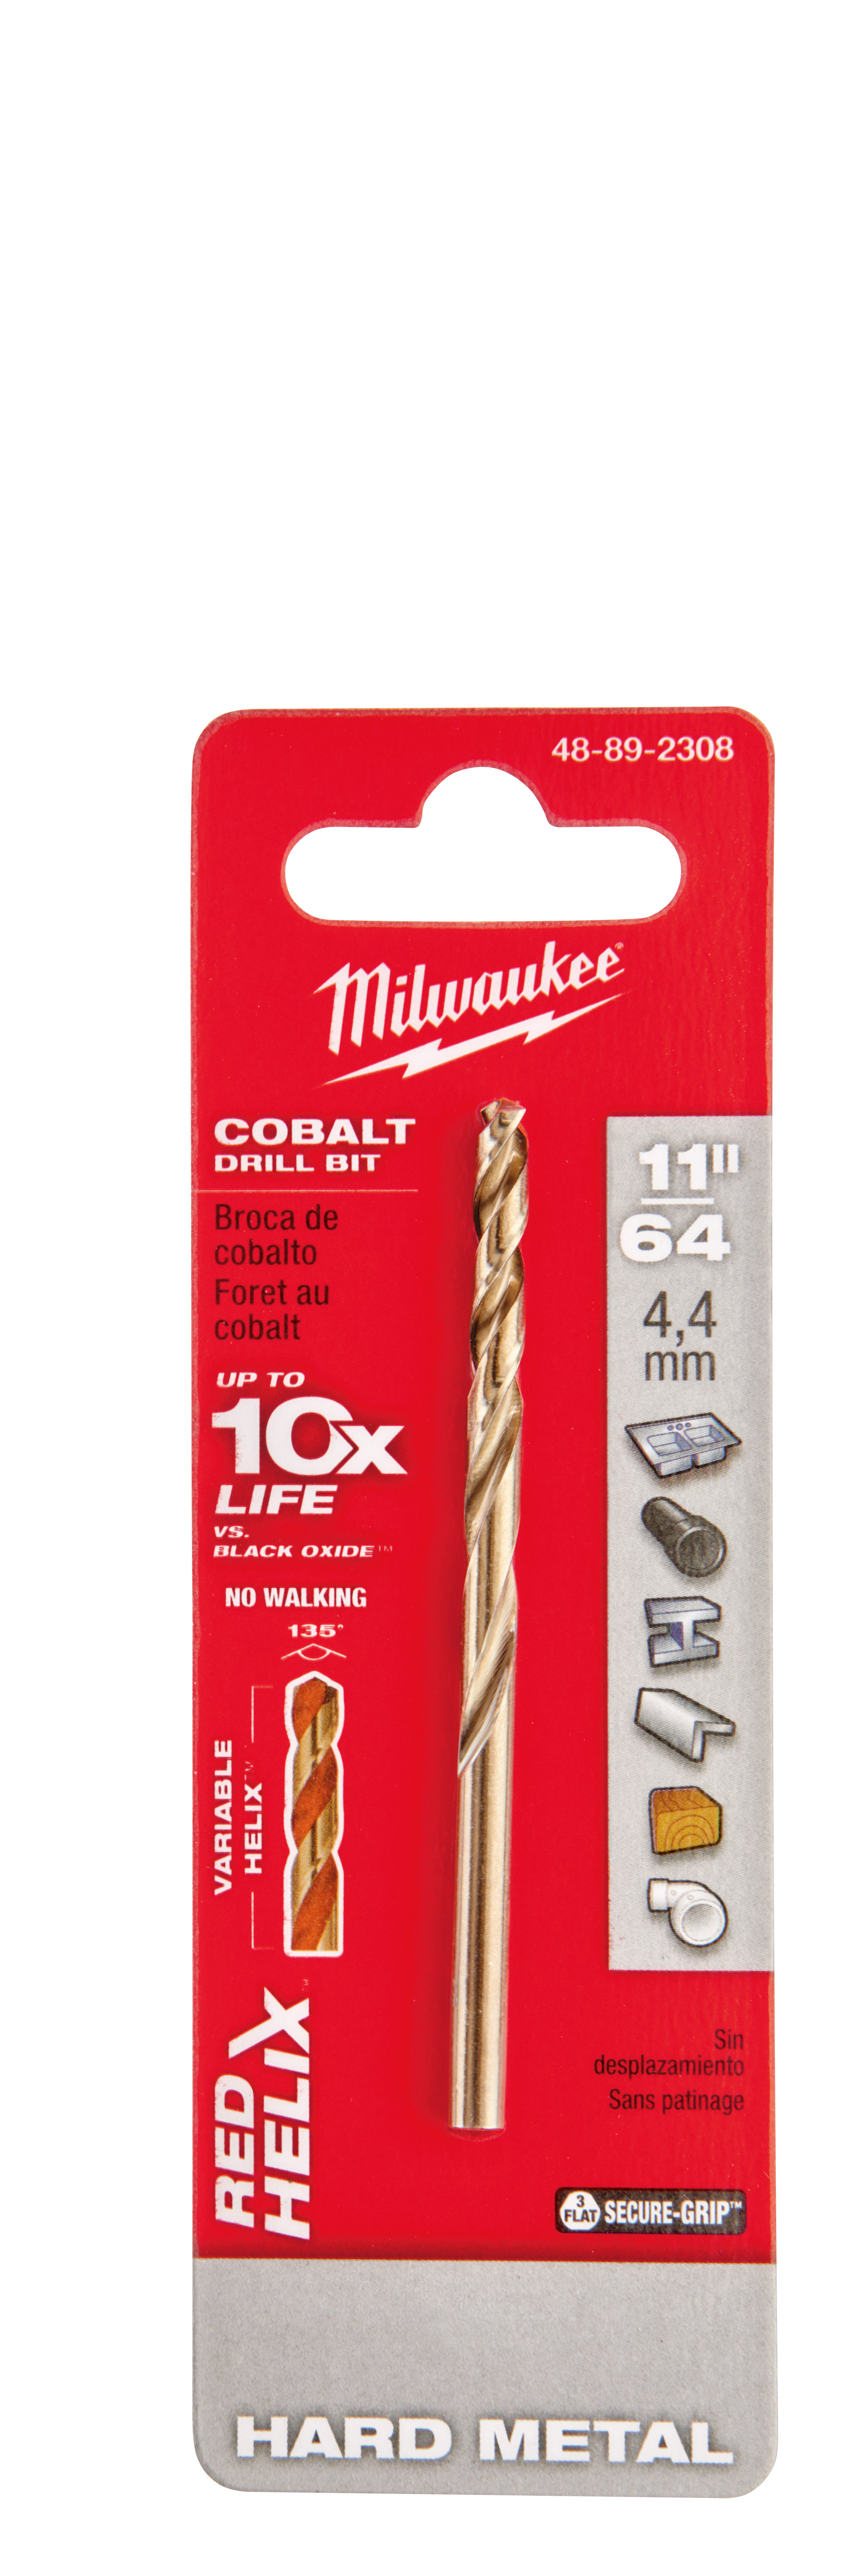 Milwaukee® 48-89-2308 RED HELIX™ Jobber Length Twist Drill Bit, 11/64 in Drill - Fraction, 0.1719 in Drill - Decimal Inch, 135 deg Point, High Speed Cobalt, Uncoated